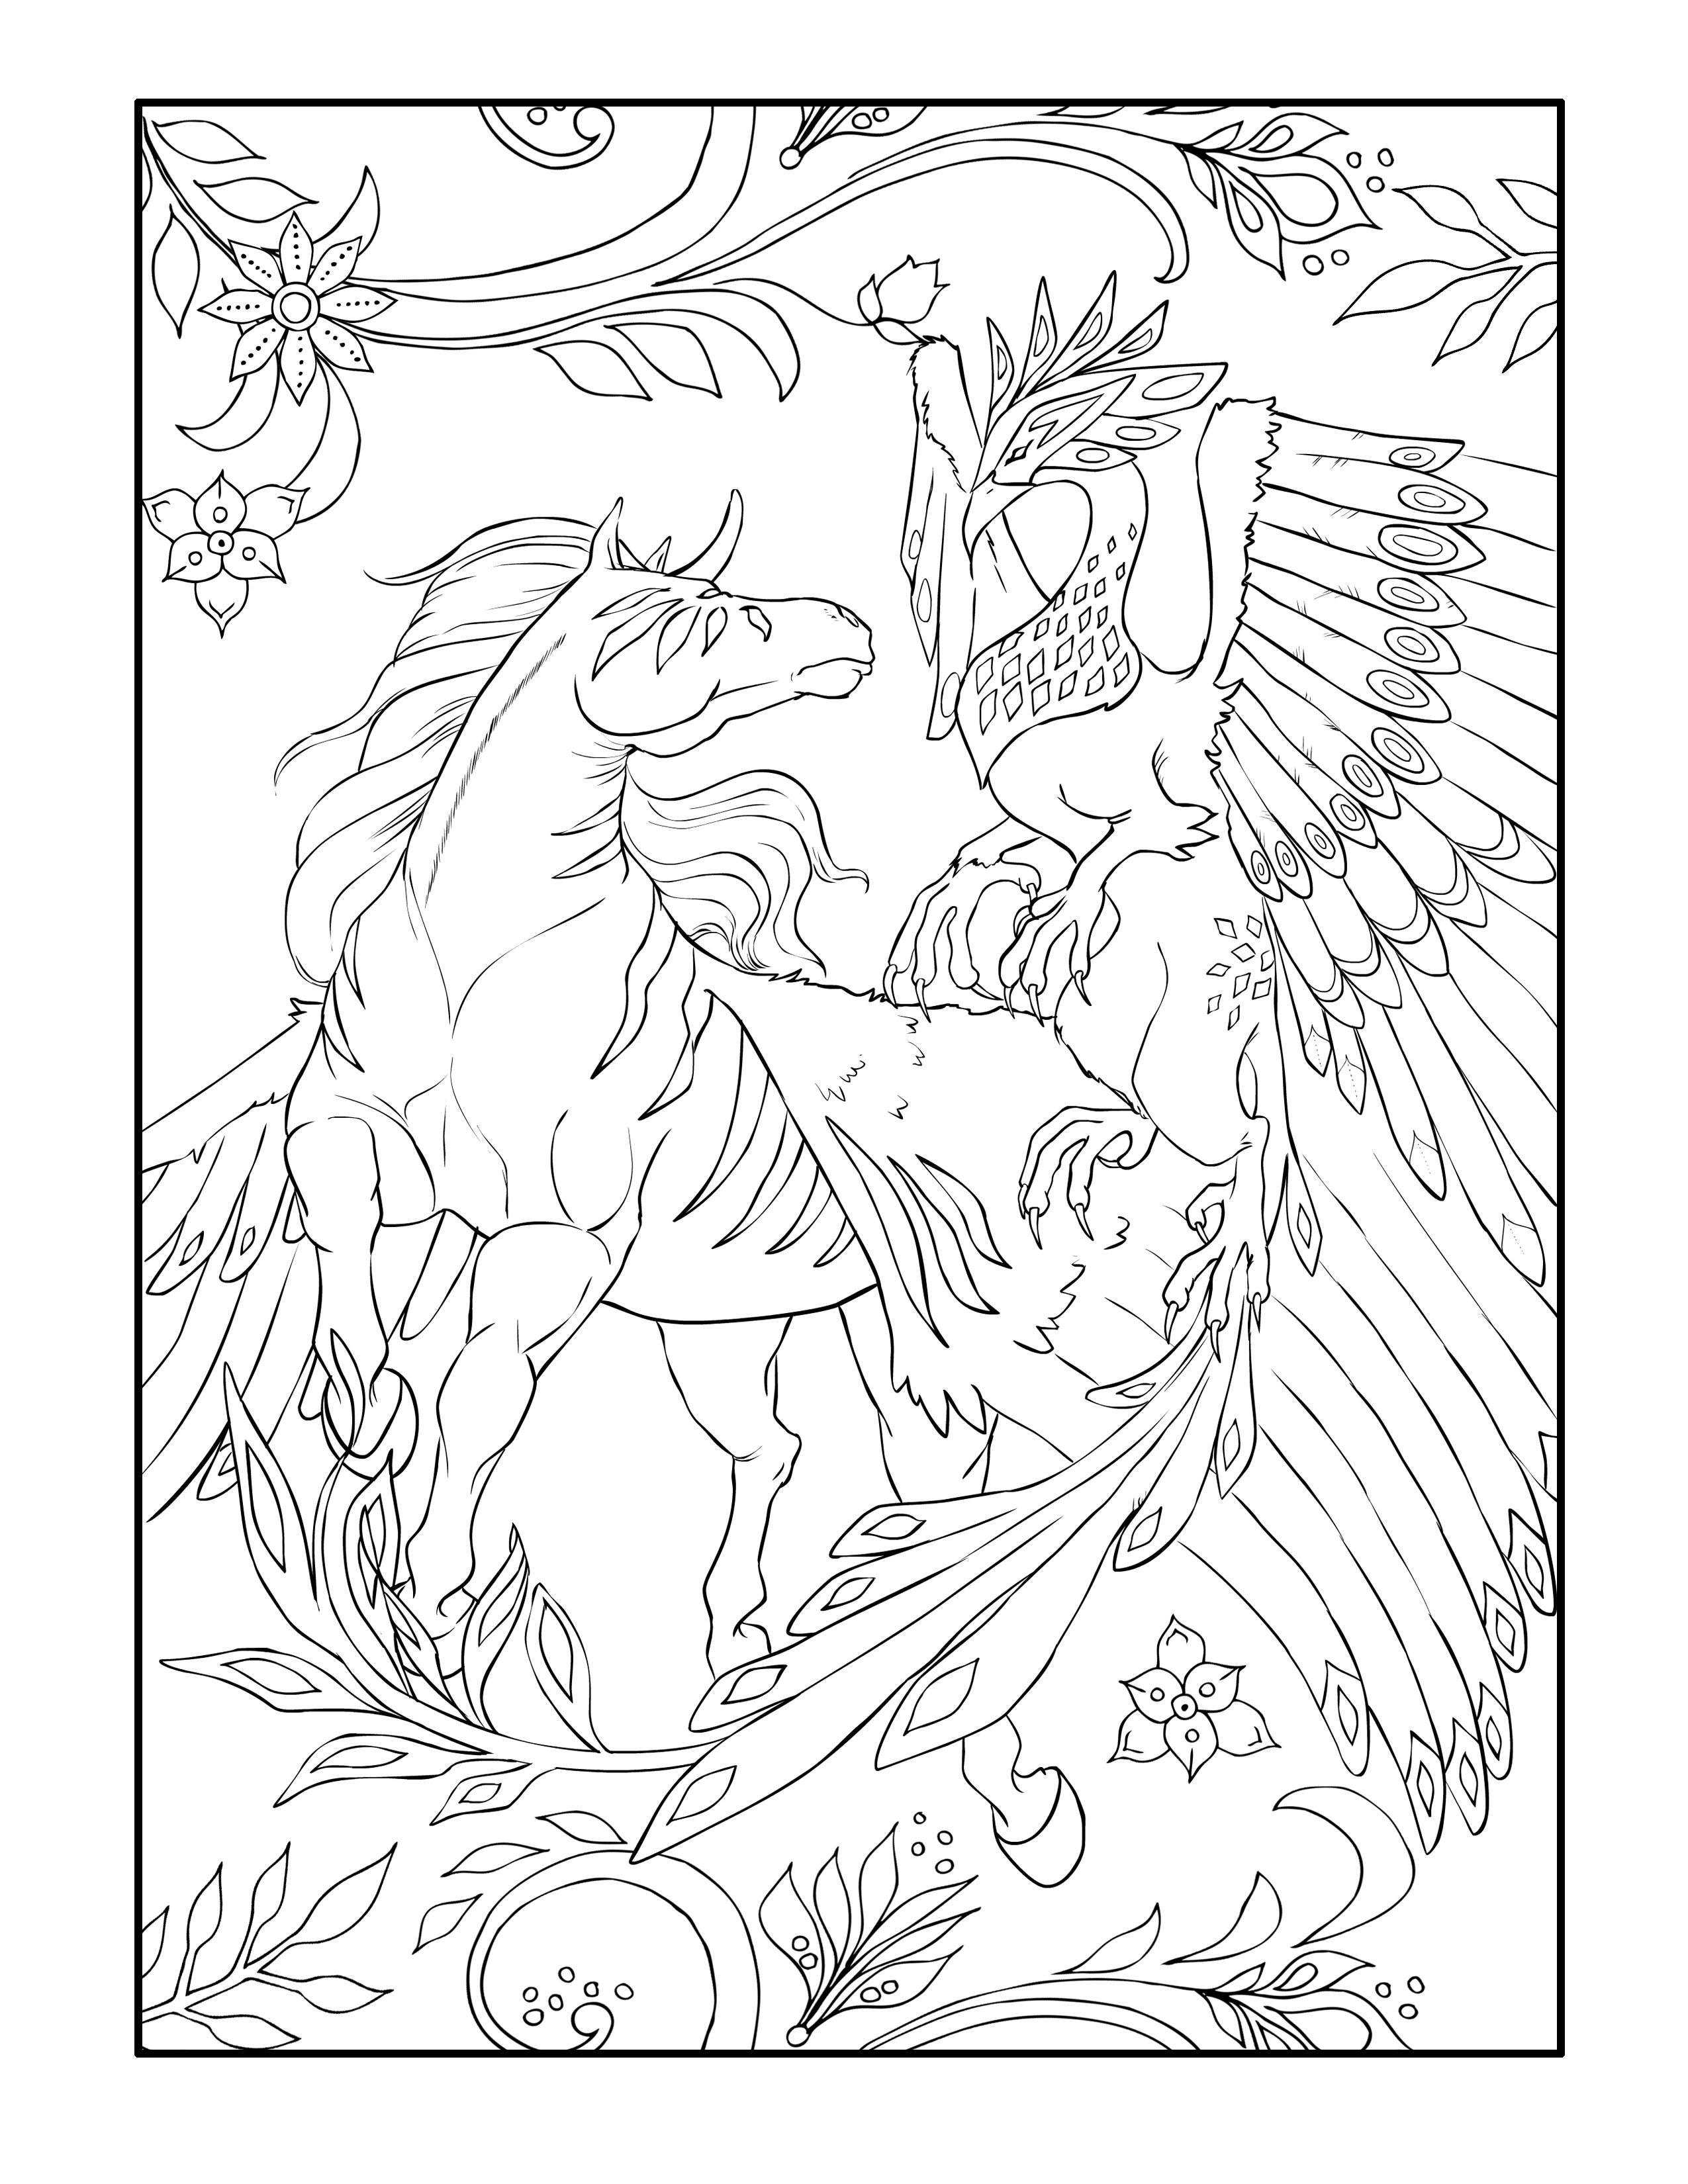 This Adult Coloring Page Is From Magical Kingdom Book If Filled With Unicorns Pegasus Griffons Other Winger Animals As Well Real